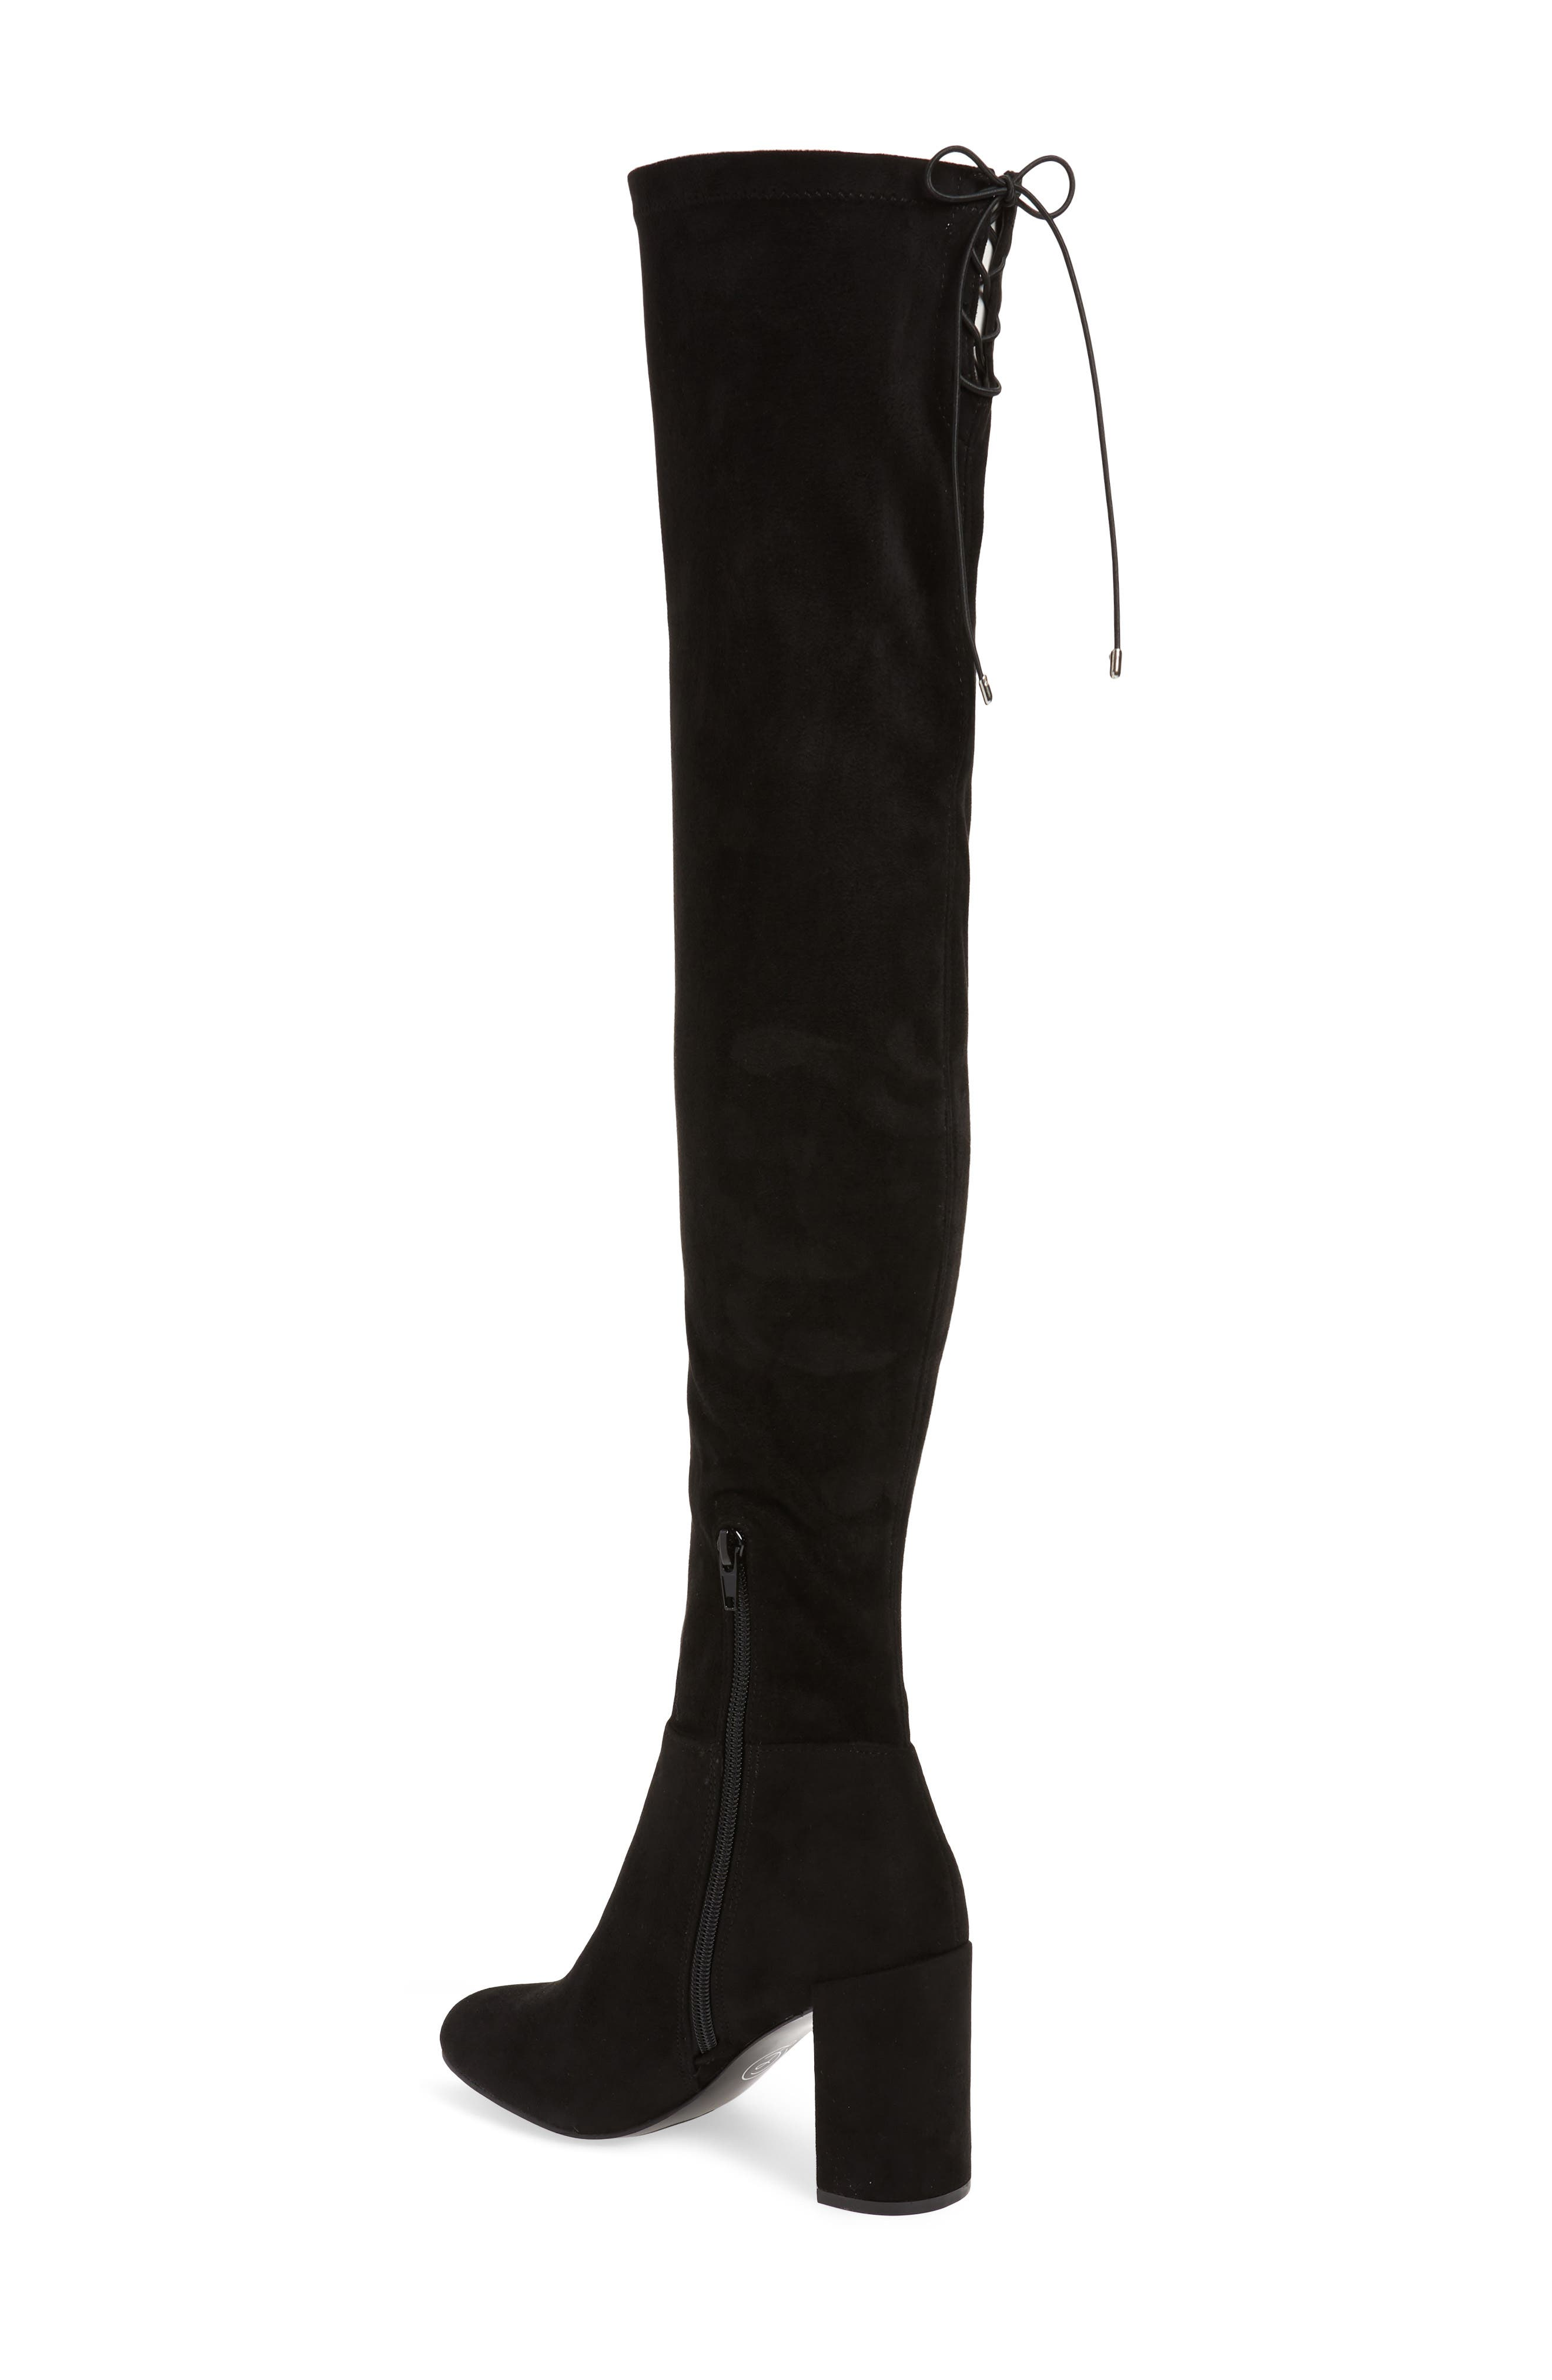 King Over the Knee Boot,                             Alternate thumbnail 2, color,                             BLACK